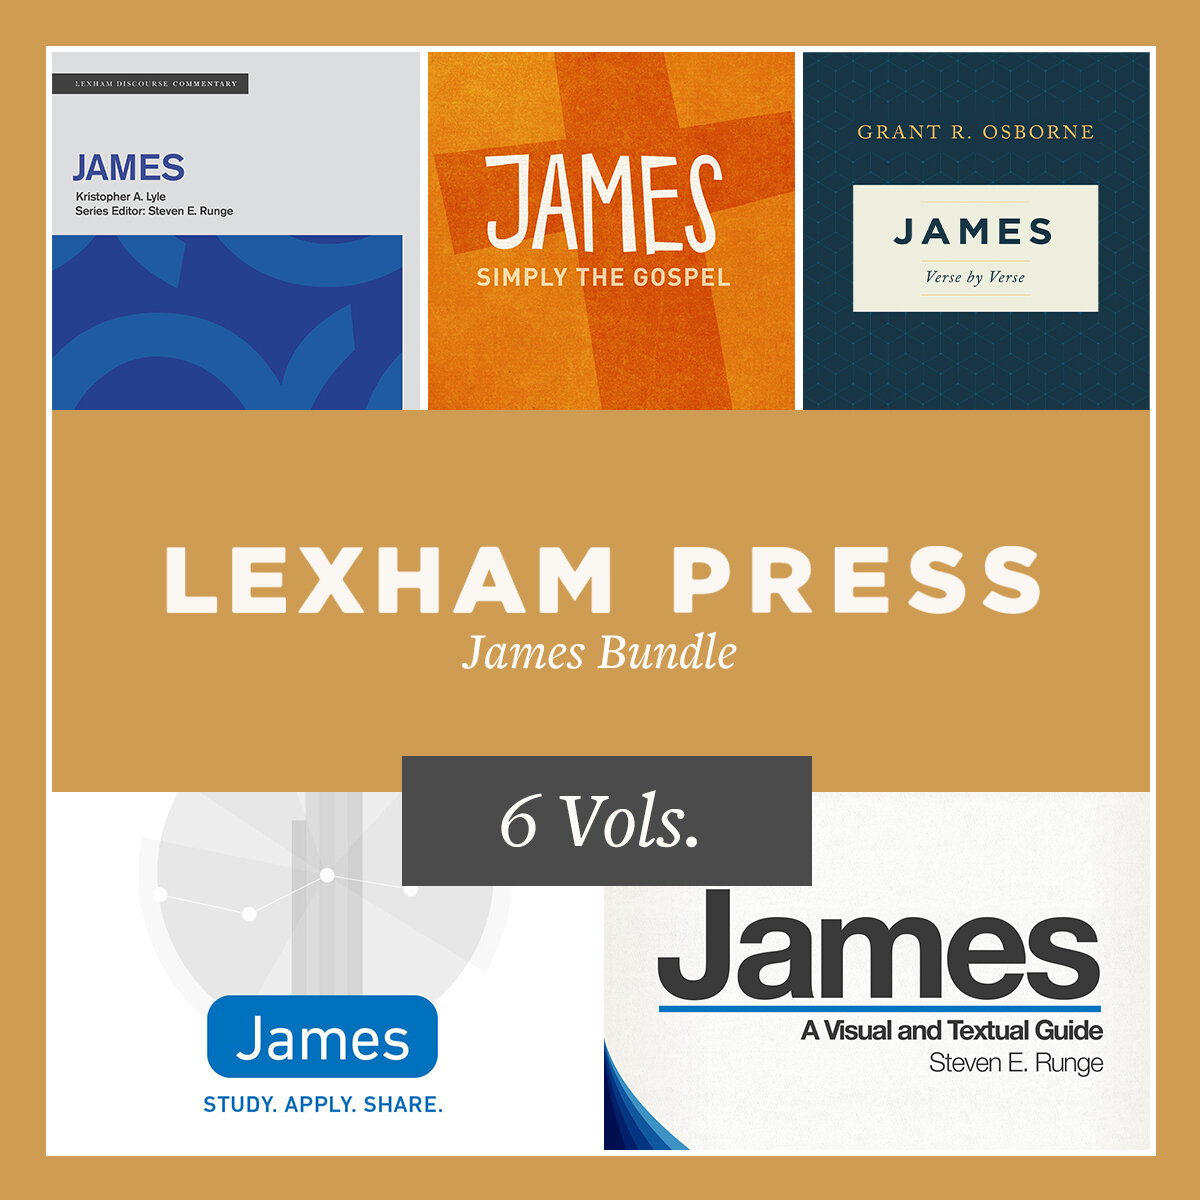 Lexham Press James Bundle (6 vols.)